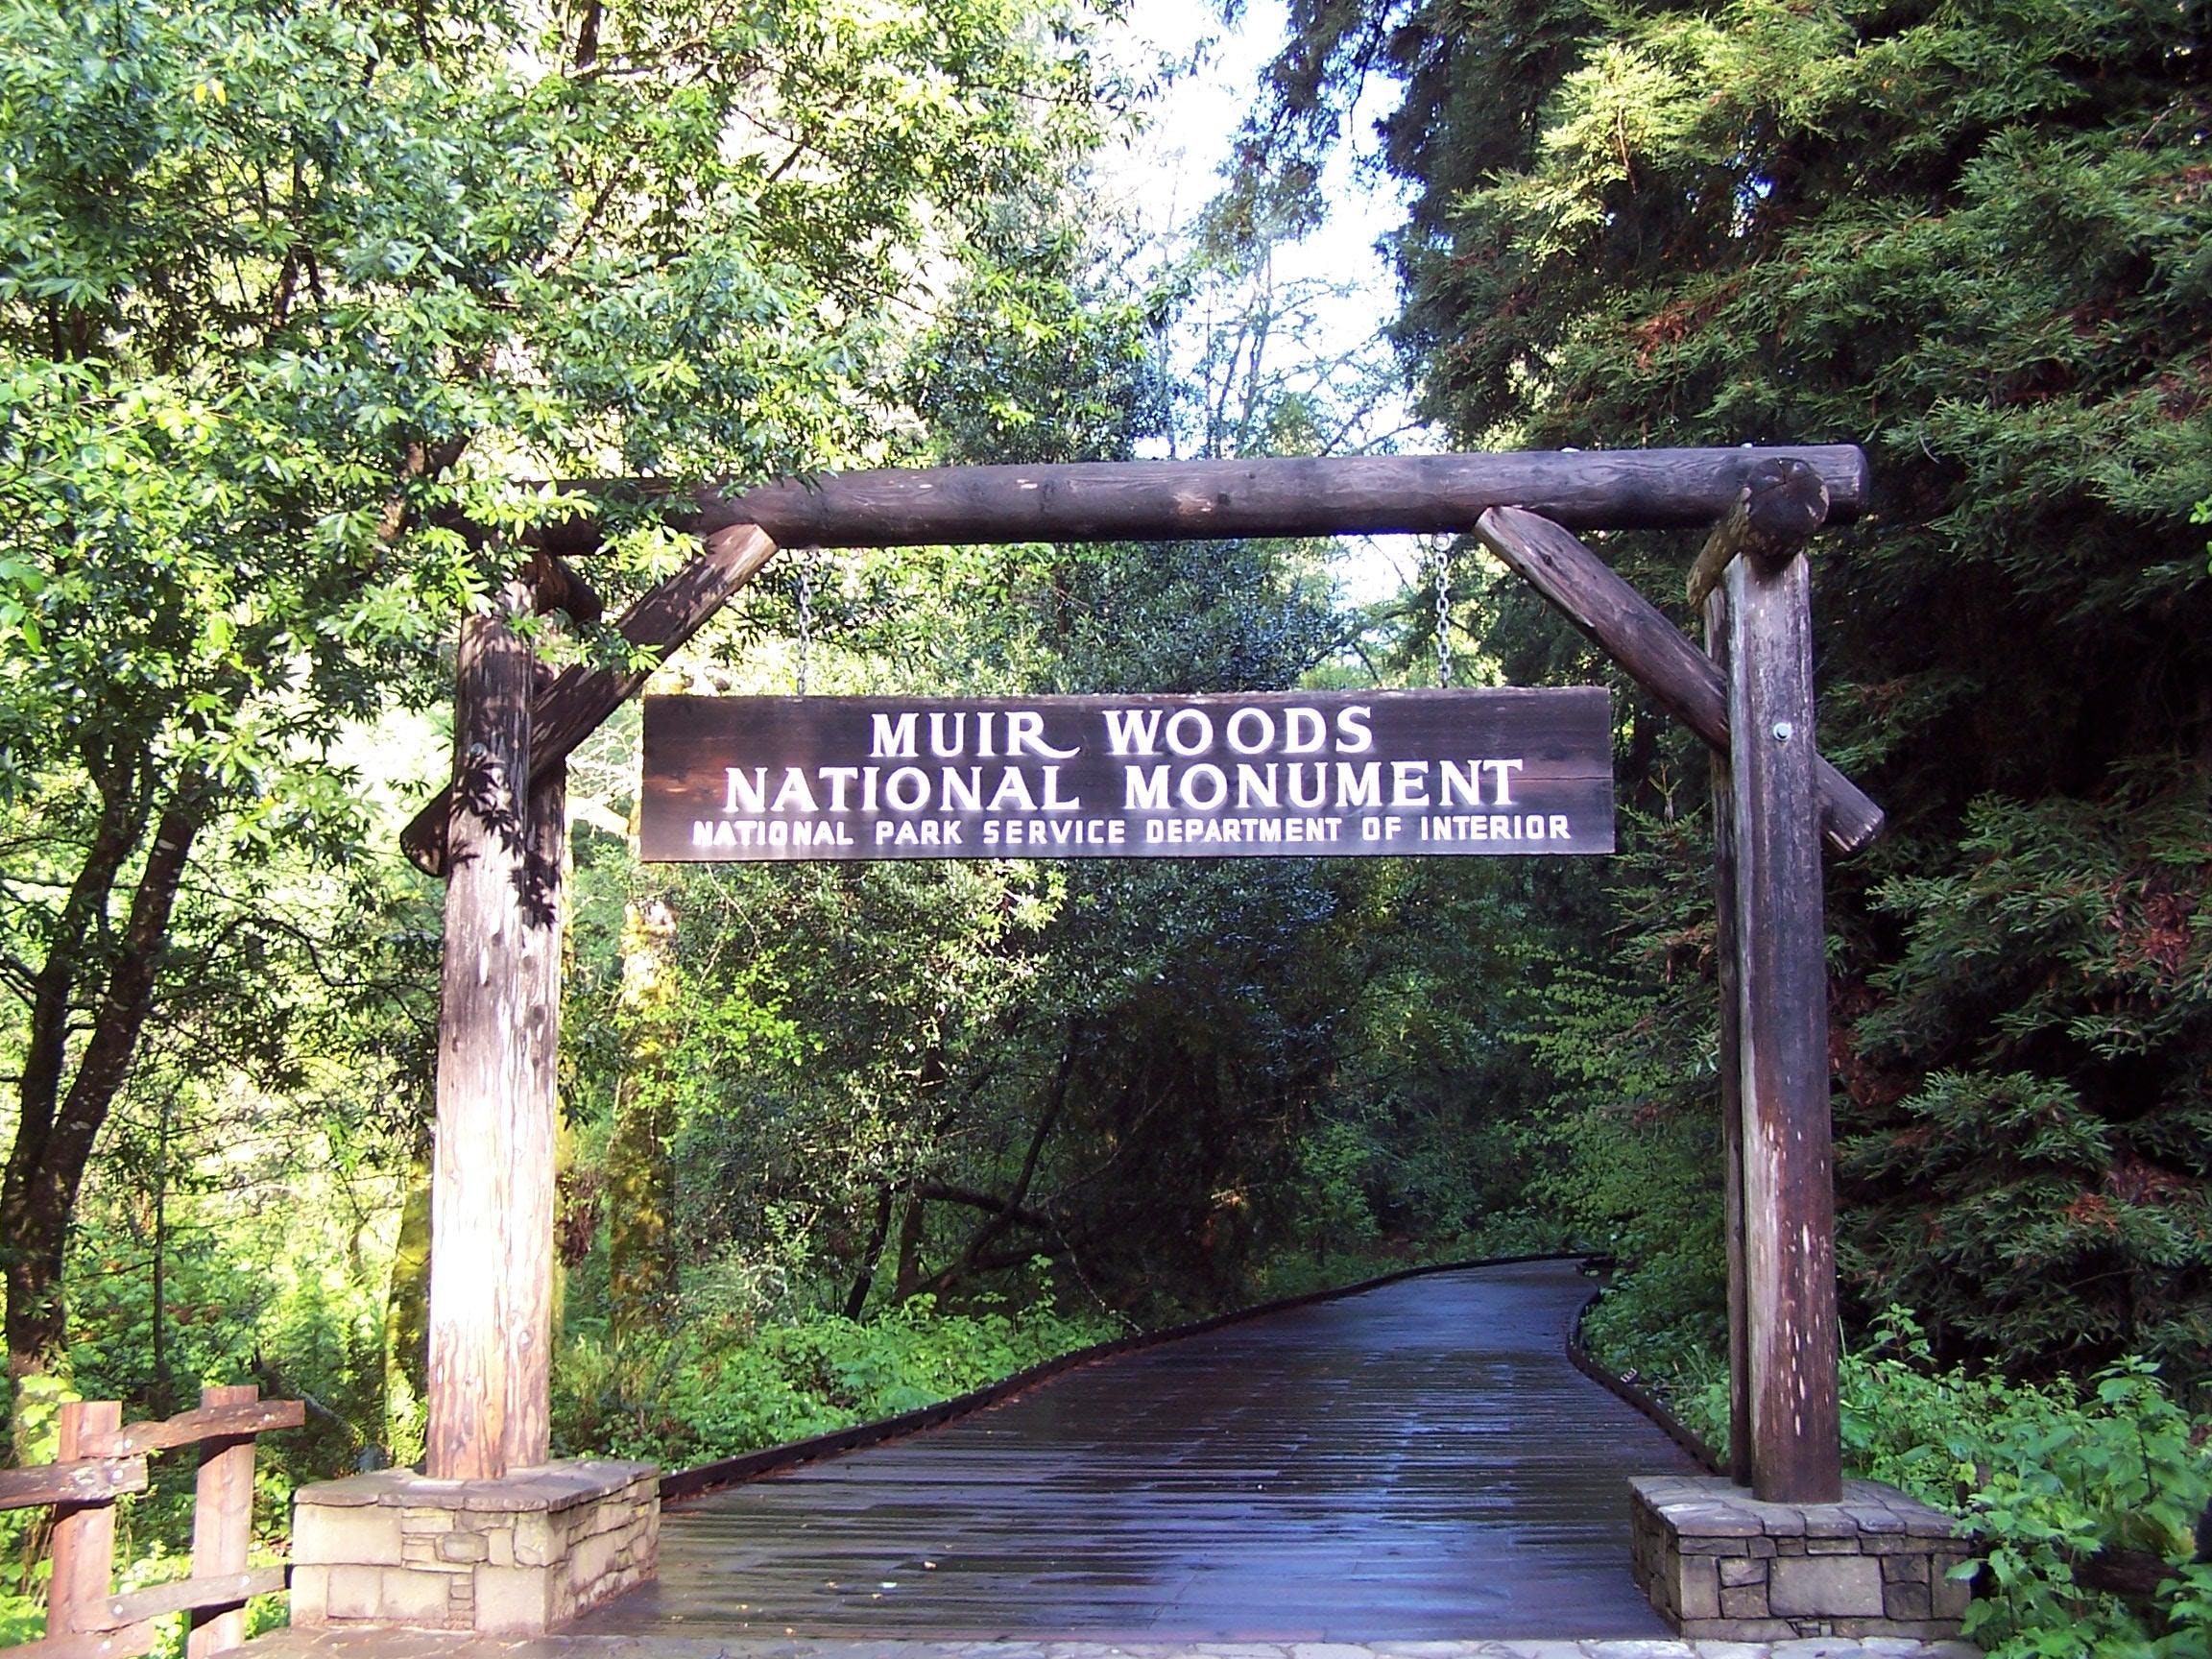 Muir Woods Tour w/ Sausalito Ferry Boat Return - Tour Photo 1 of 10